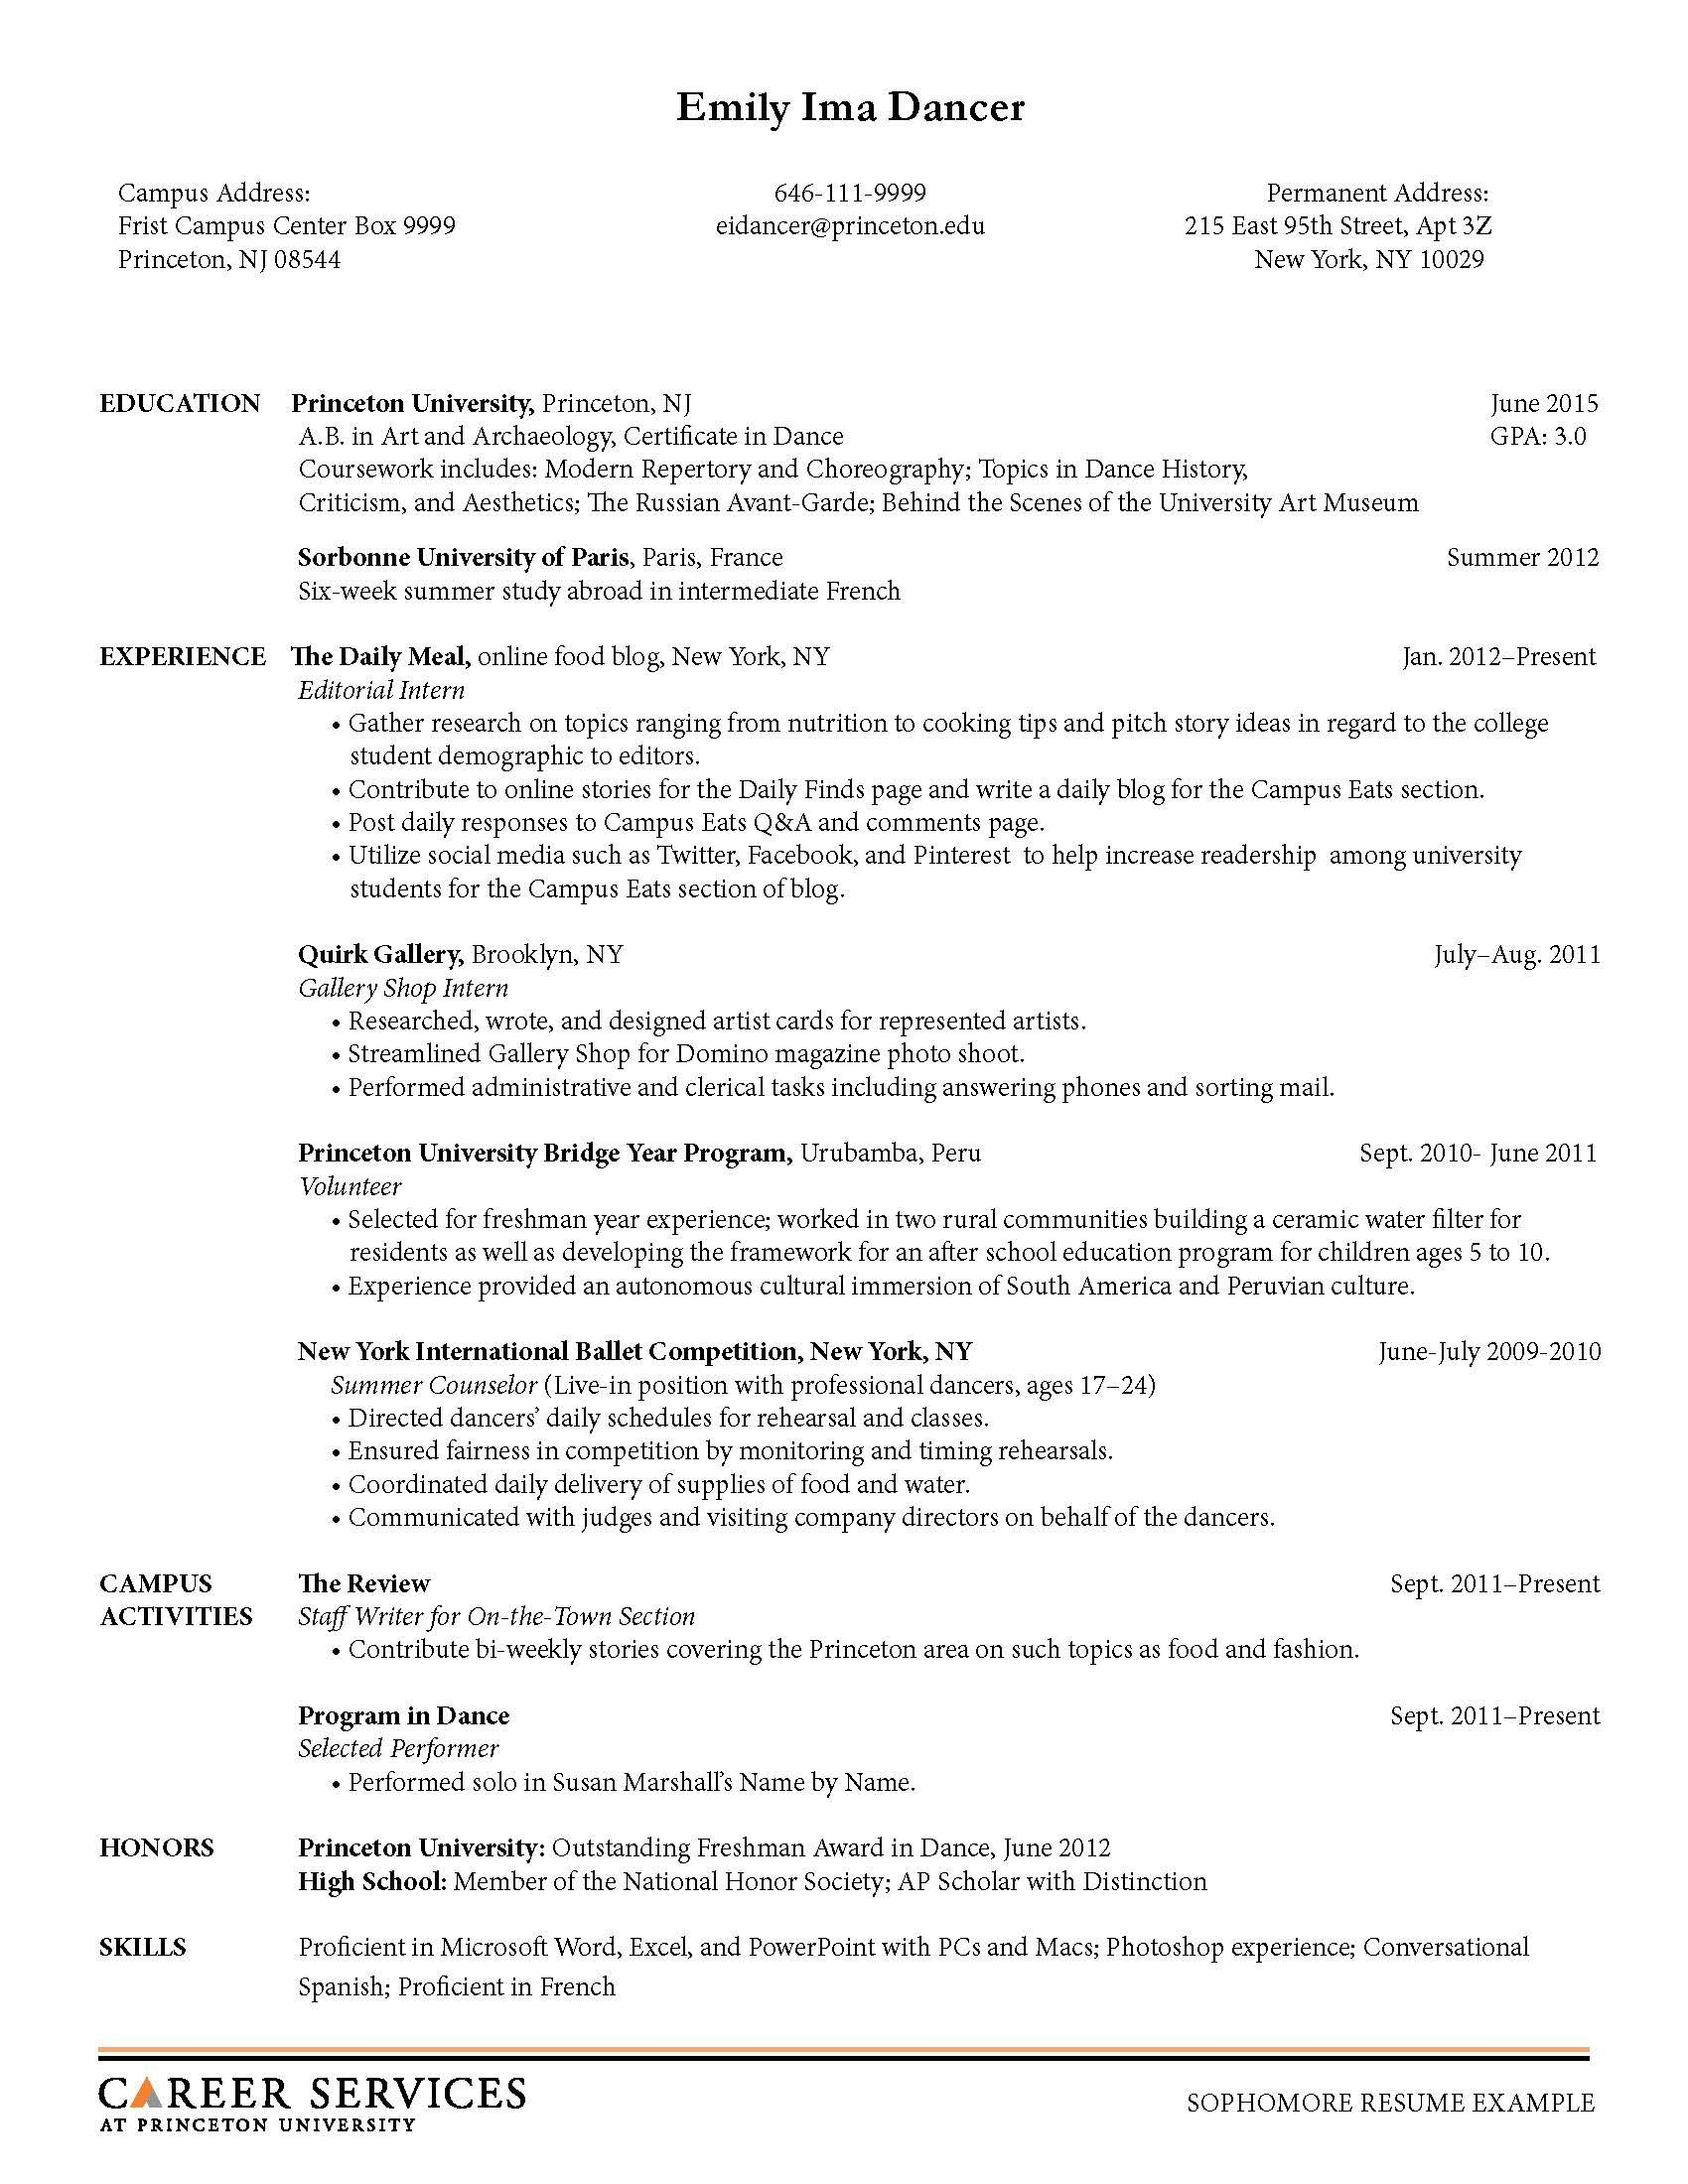 Opposenewapstandardsus  Picturesque Sample Resume Resume And Career On Pinterest With Luxury Business Systems Analyst Resume Besides Resume Ex Furthermore Sample Of Resumes With Easy On The Eye Social Media Marketing Resume Also Job Objective On Resume In Addition Levels Of Language Proficiency Resume And Resume Outline Example As Well As Resume Free Online Additionally Resume Verb From Pinterestcom With Opposenewapstandardsus  Luxury Sample Resume Resume And Career On Pinterest With Easy On The Eye Business Systems Analyst Resume Besides Resume Ex Furthermore Sample Of Resumes And Picturesque Social Media Marketing Resume Also Job Objective On Resume In Addition Levels Of Language Proficiency Resume From Pinterestcom